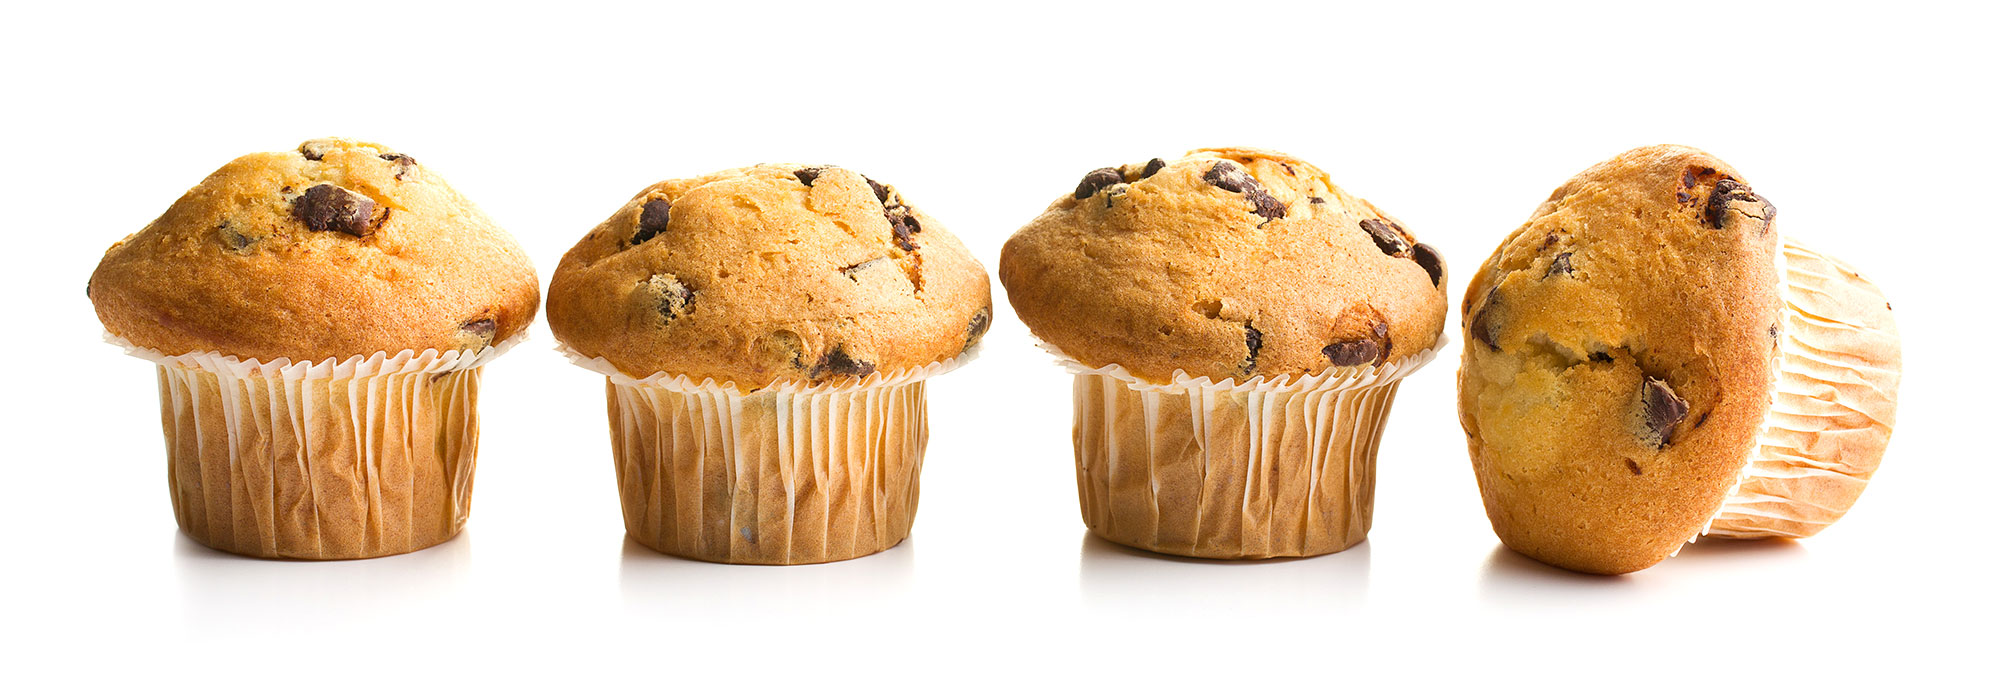 muffins-baked-goods_processing_machines